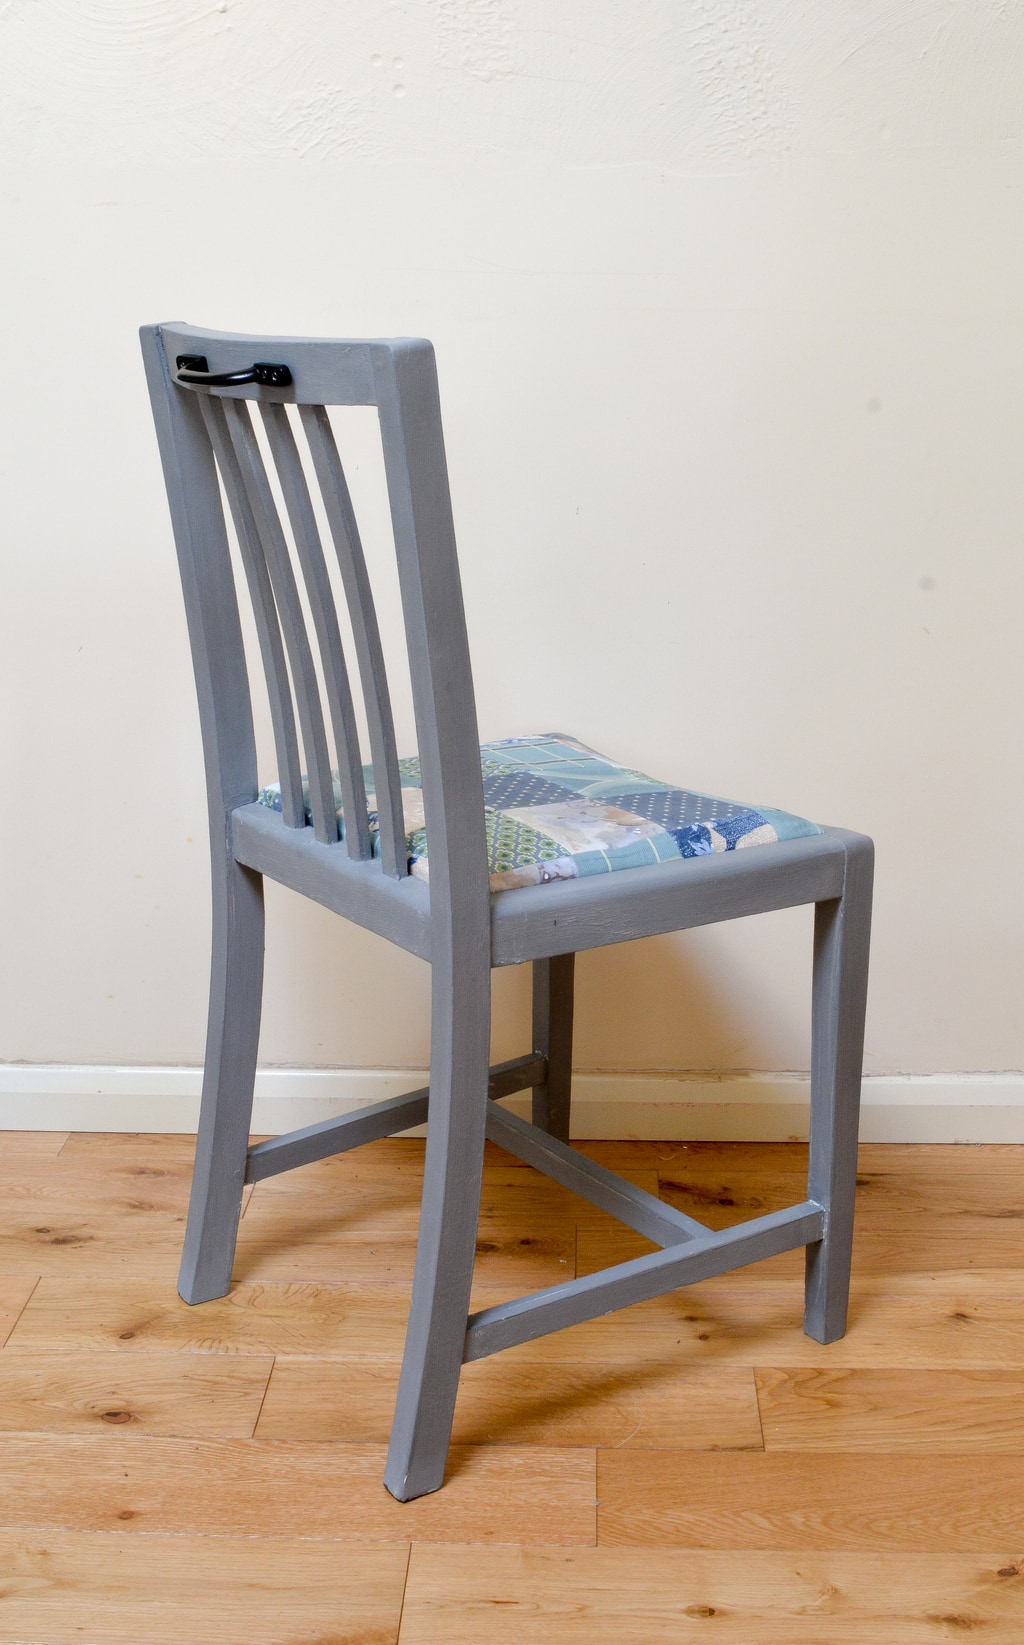 Upcycled Dining Room Chair, waxed stain resistant seats